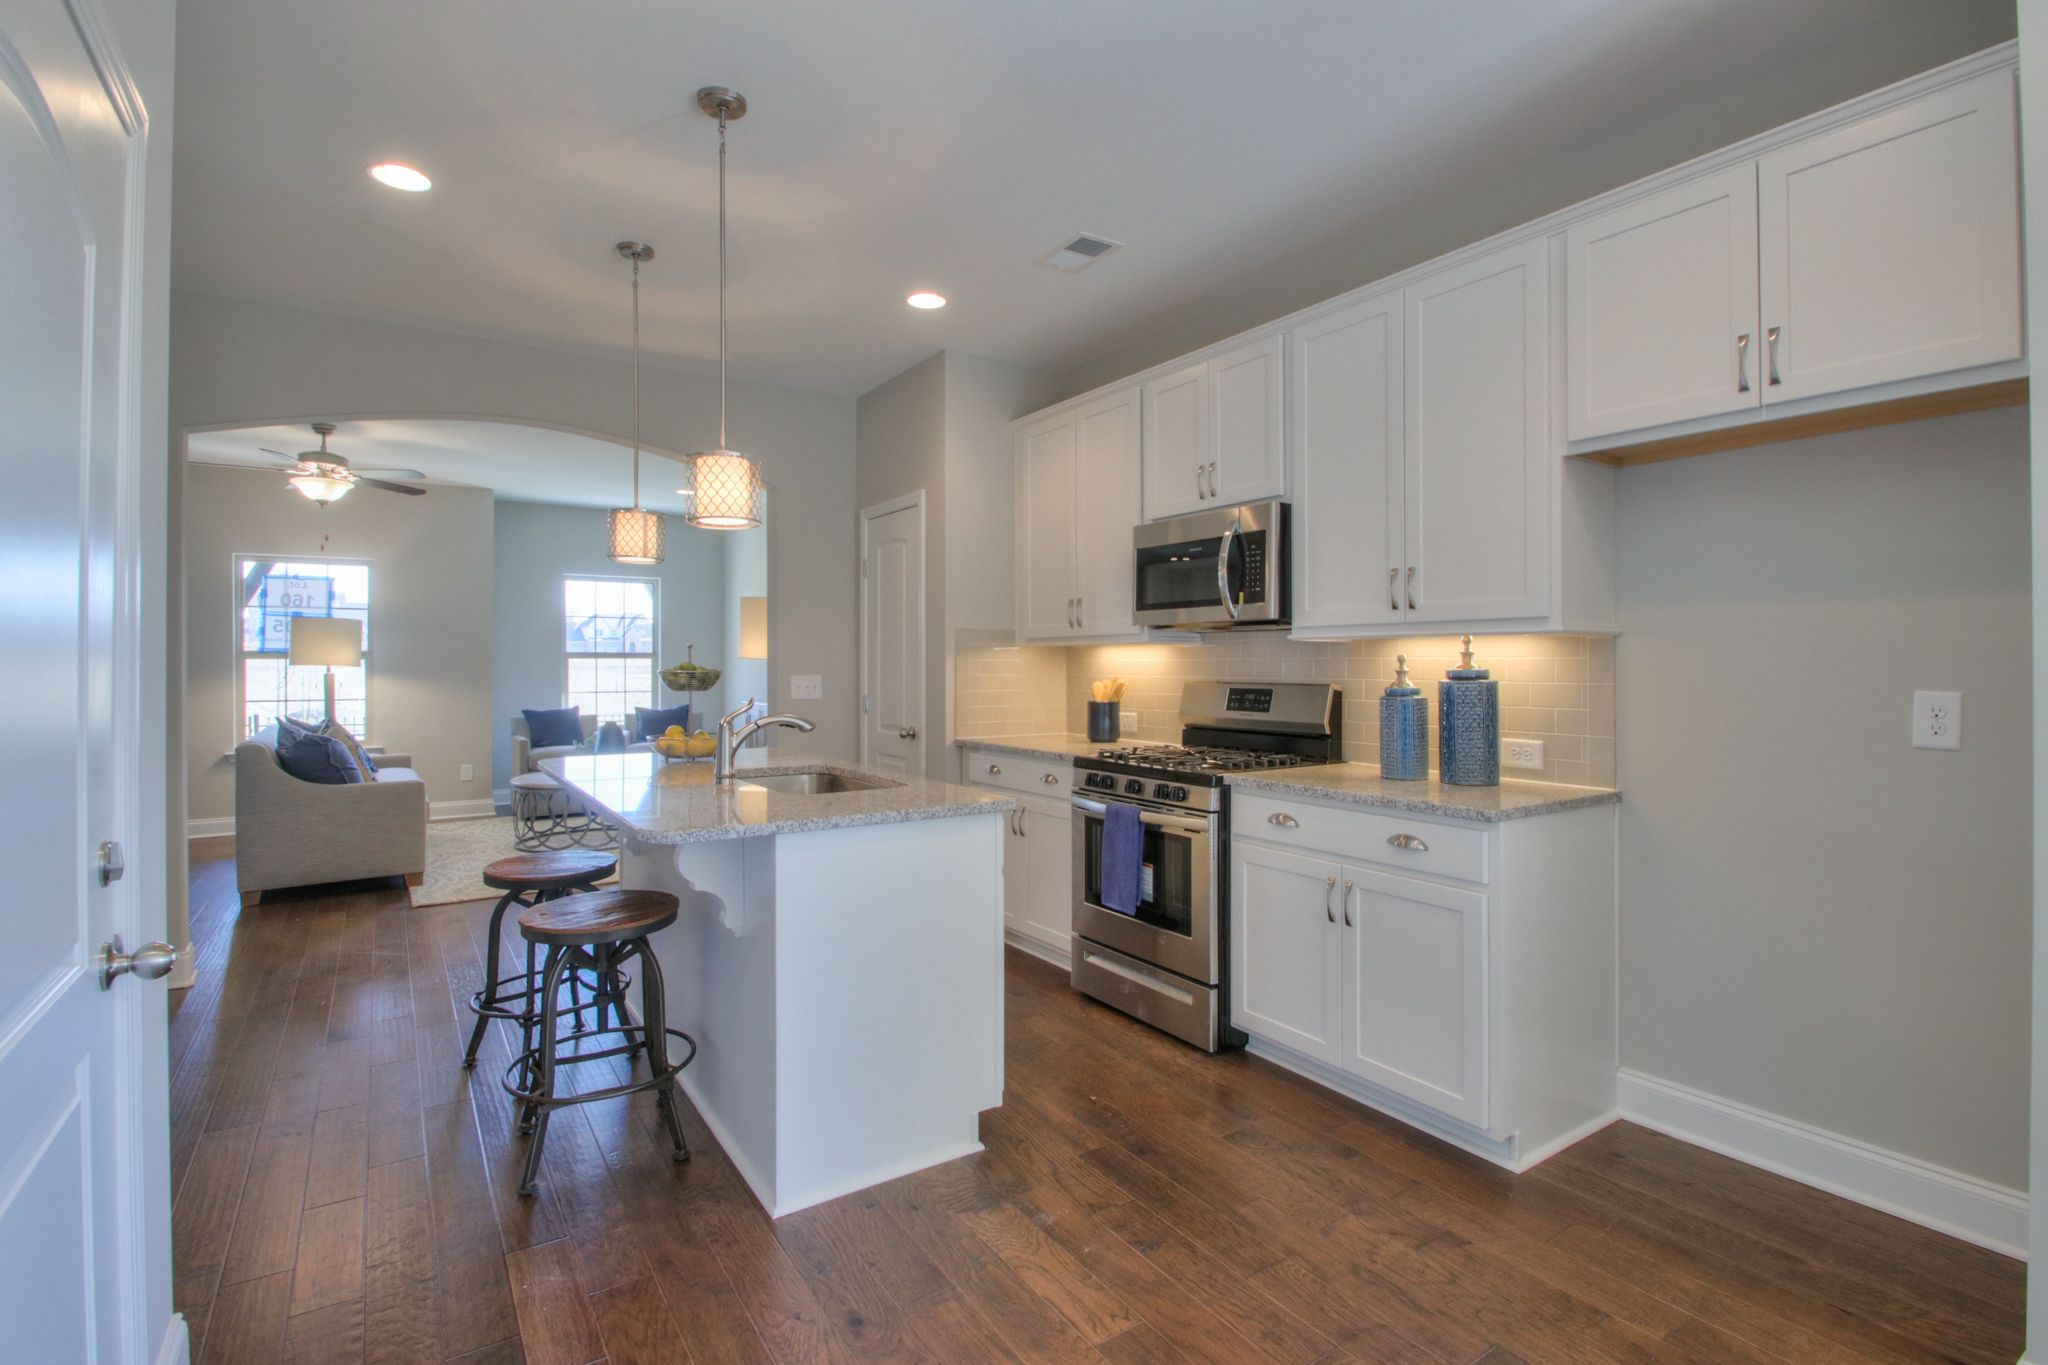 Kitchen featured in The Newport By Goodall Homes in Nashville, TN